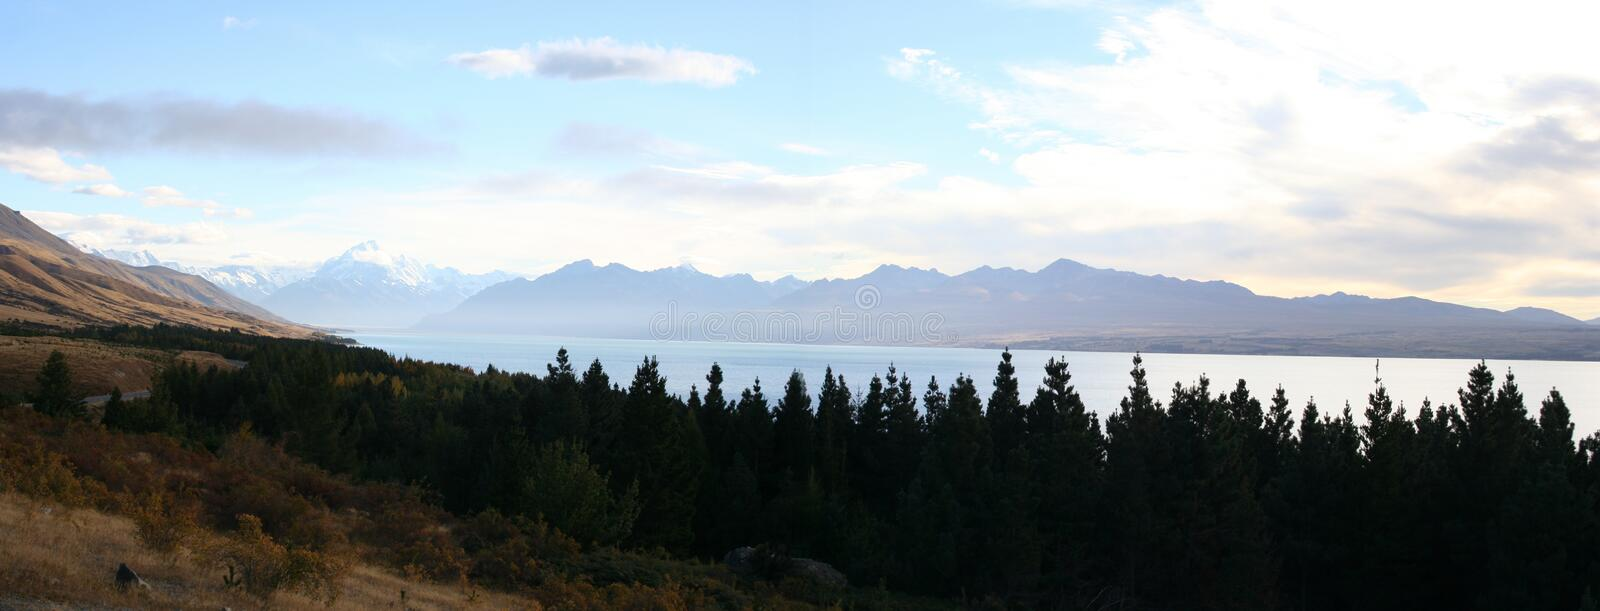 Panorama - Along the road to Mt Cook, New Zealand stock images